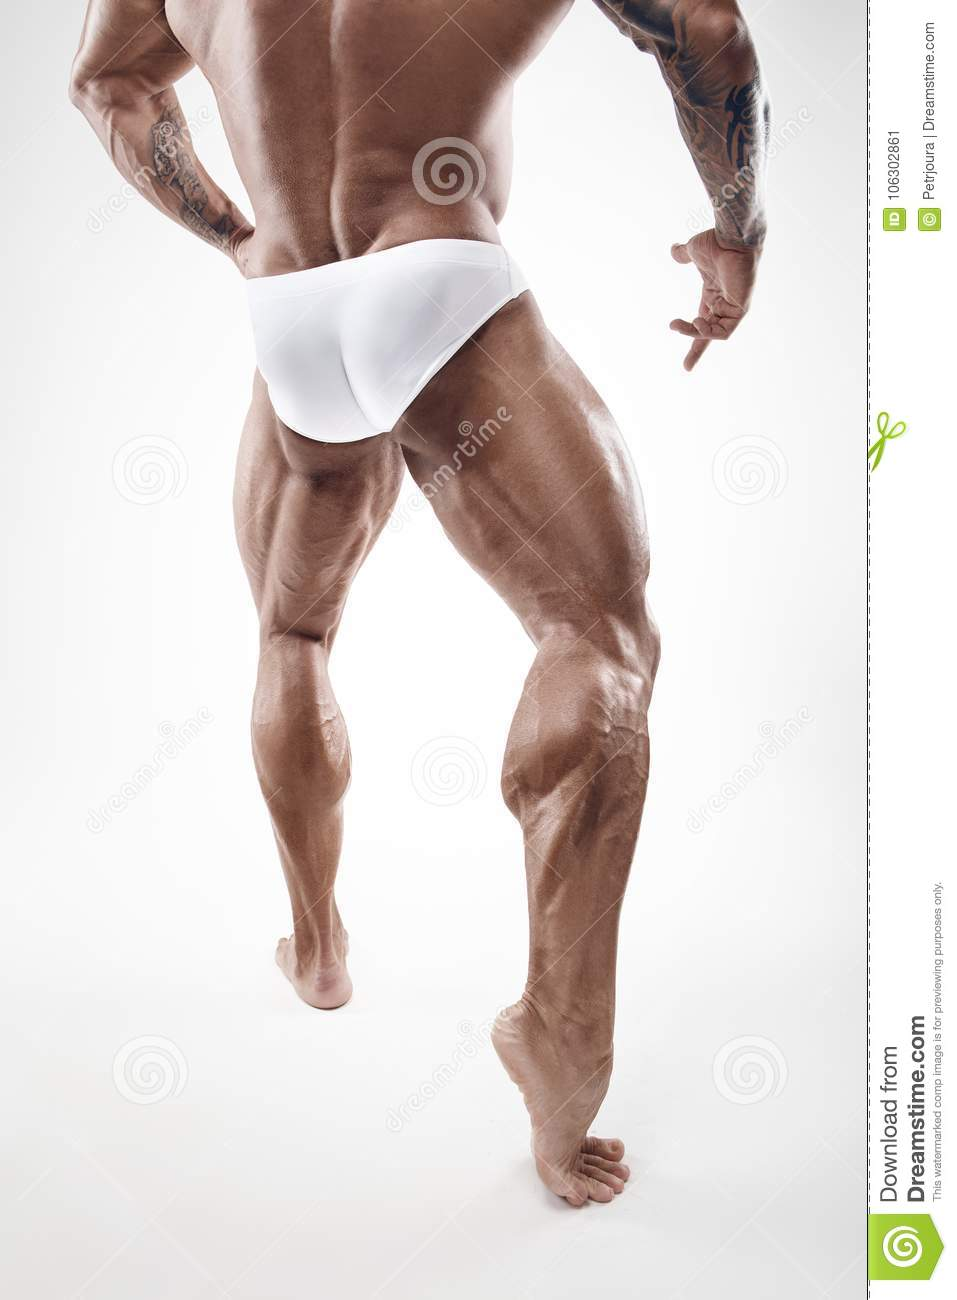 Strong Athletic Man Fitness Model Torso showing naked muscular l